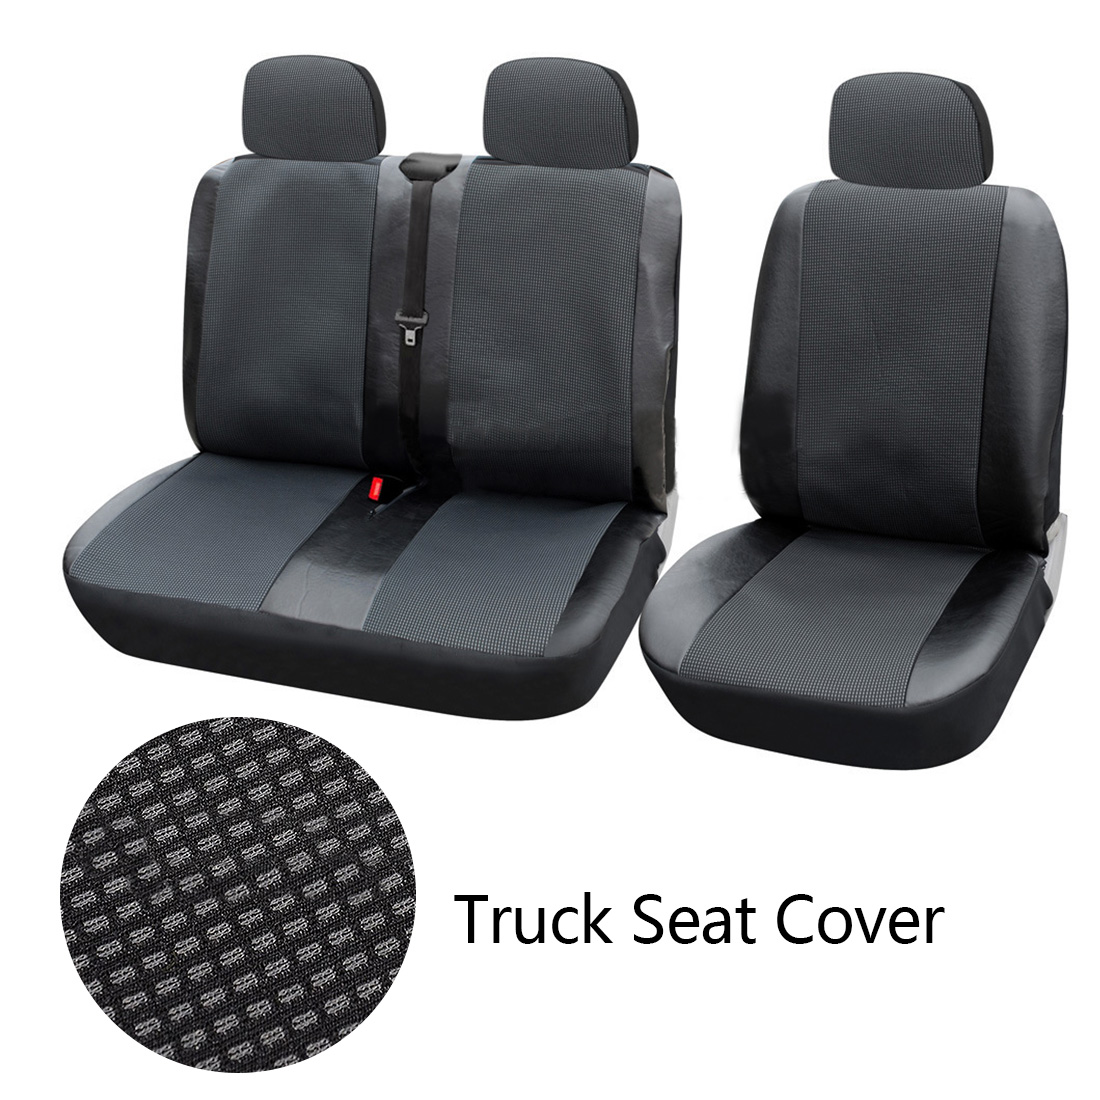 Dewtreetali 1+2 Seat Covers Car Seat Cover for Transporter/Van Universal Fit with Artificial LeatherTruck Interior AccessoriesDewtreetali 1+2 Seat Covers Car Seat Cover for Transporter/Van Universal Fit with Artificial LeatherTruck Interior Accessories